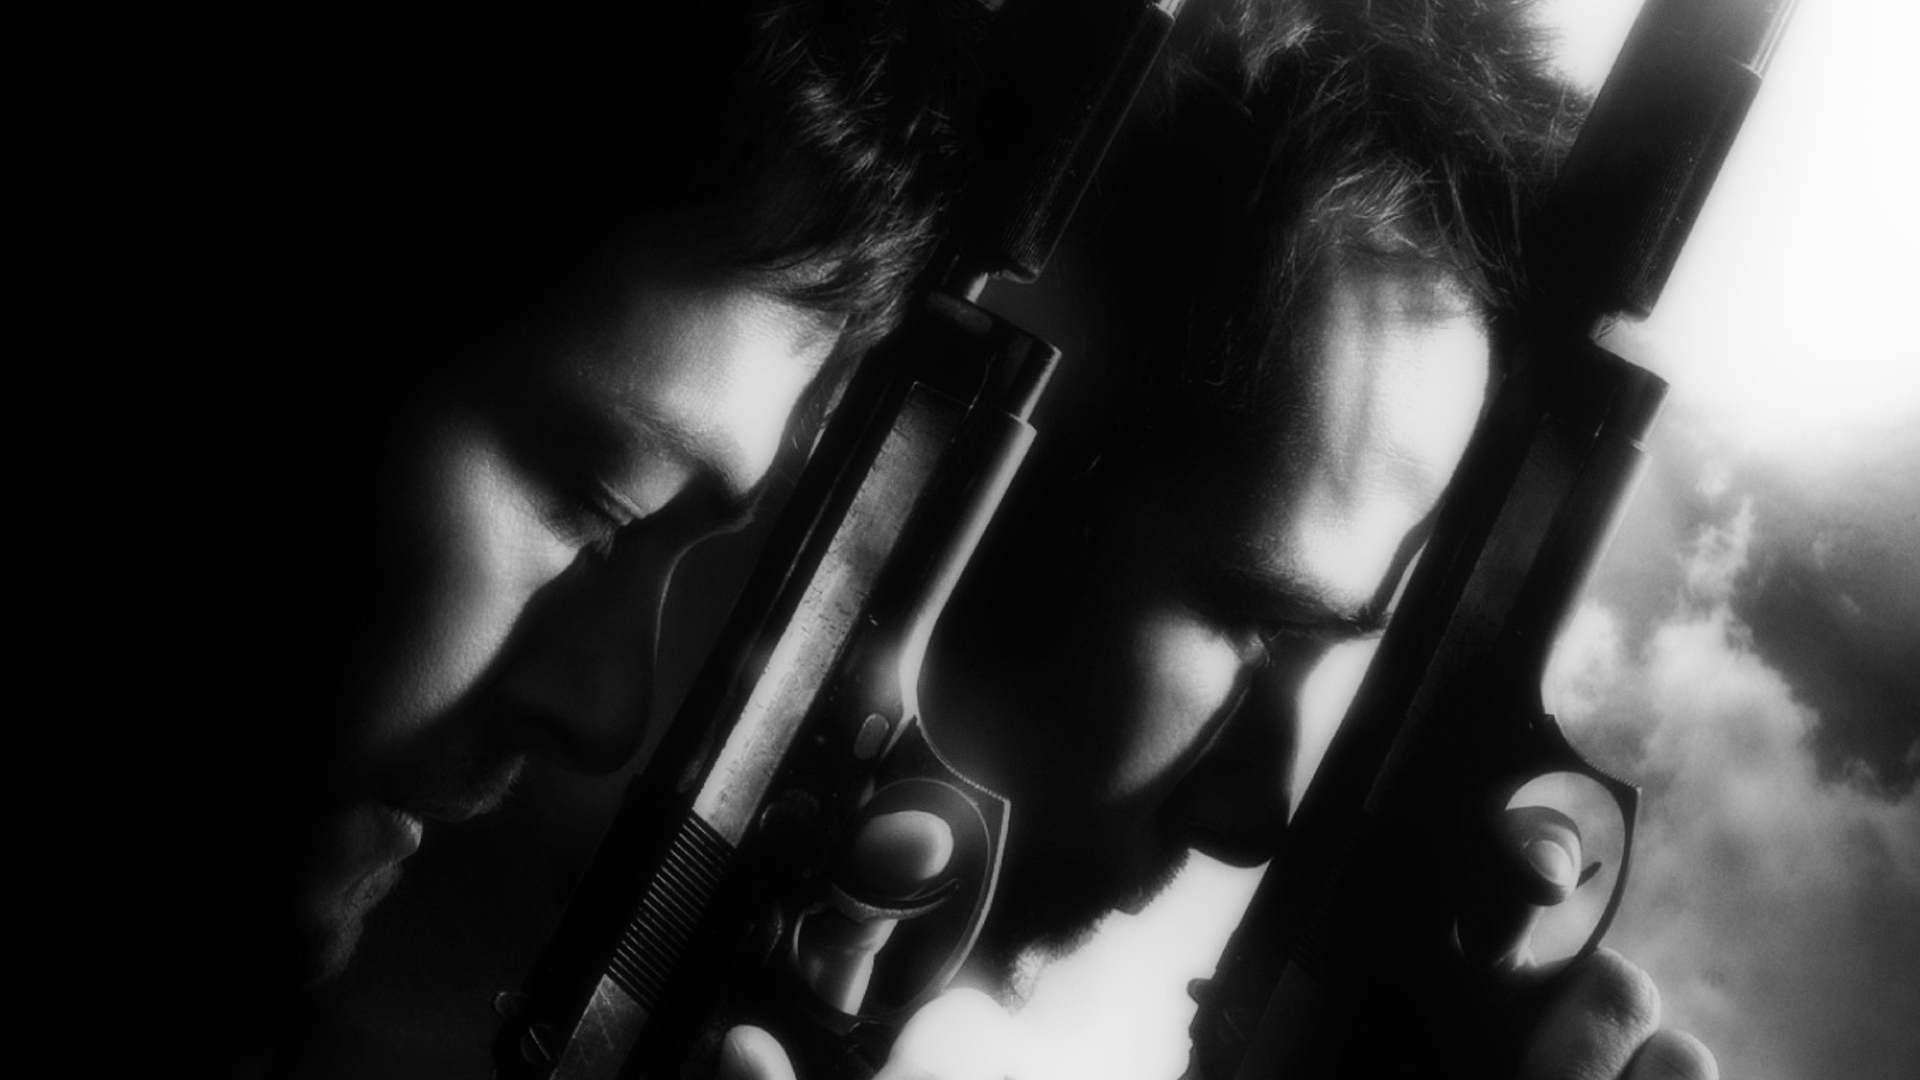 the gallery for boondock saints wallpaper smoking